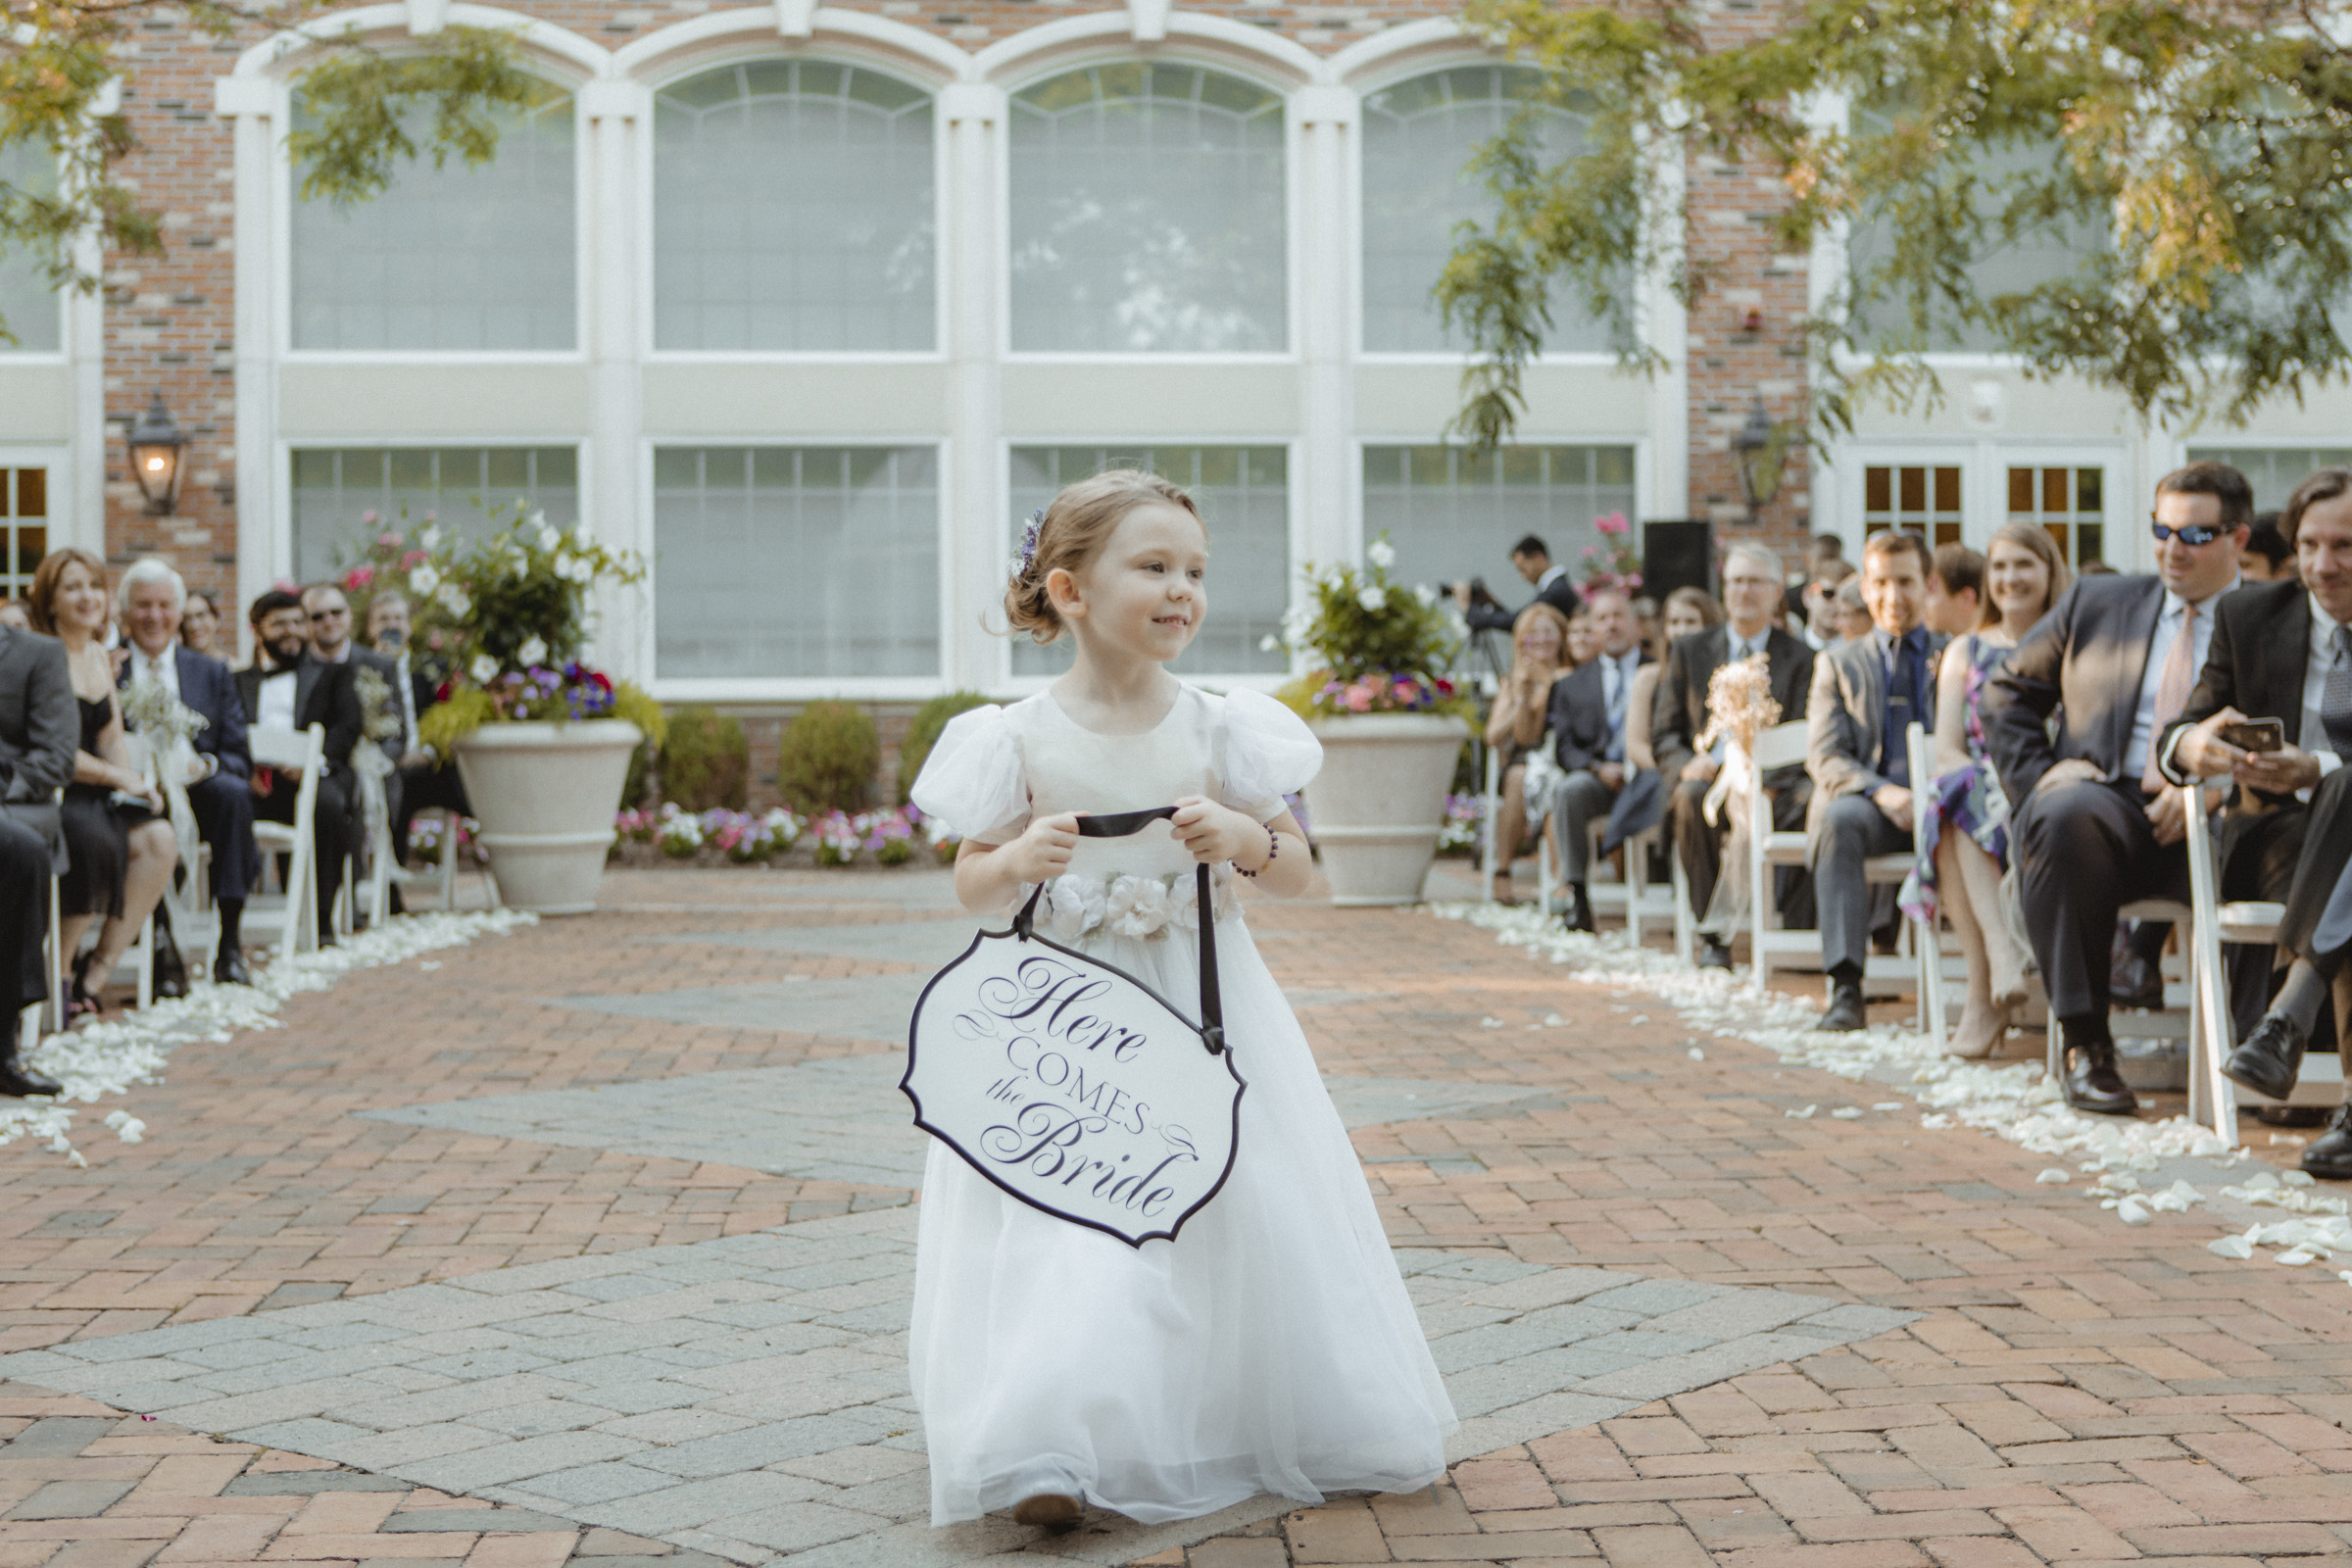 """Flowergirl walks down the aisle holding """"here comes the bride"""" sign - Estate at Florentine Gardens wedding - Hudson Valley Wedding - Kelsey & Anish's wedding - Amy Sims Photography"""